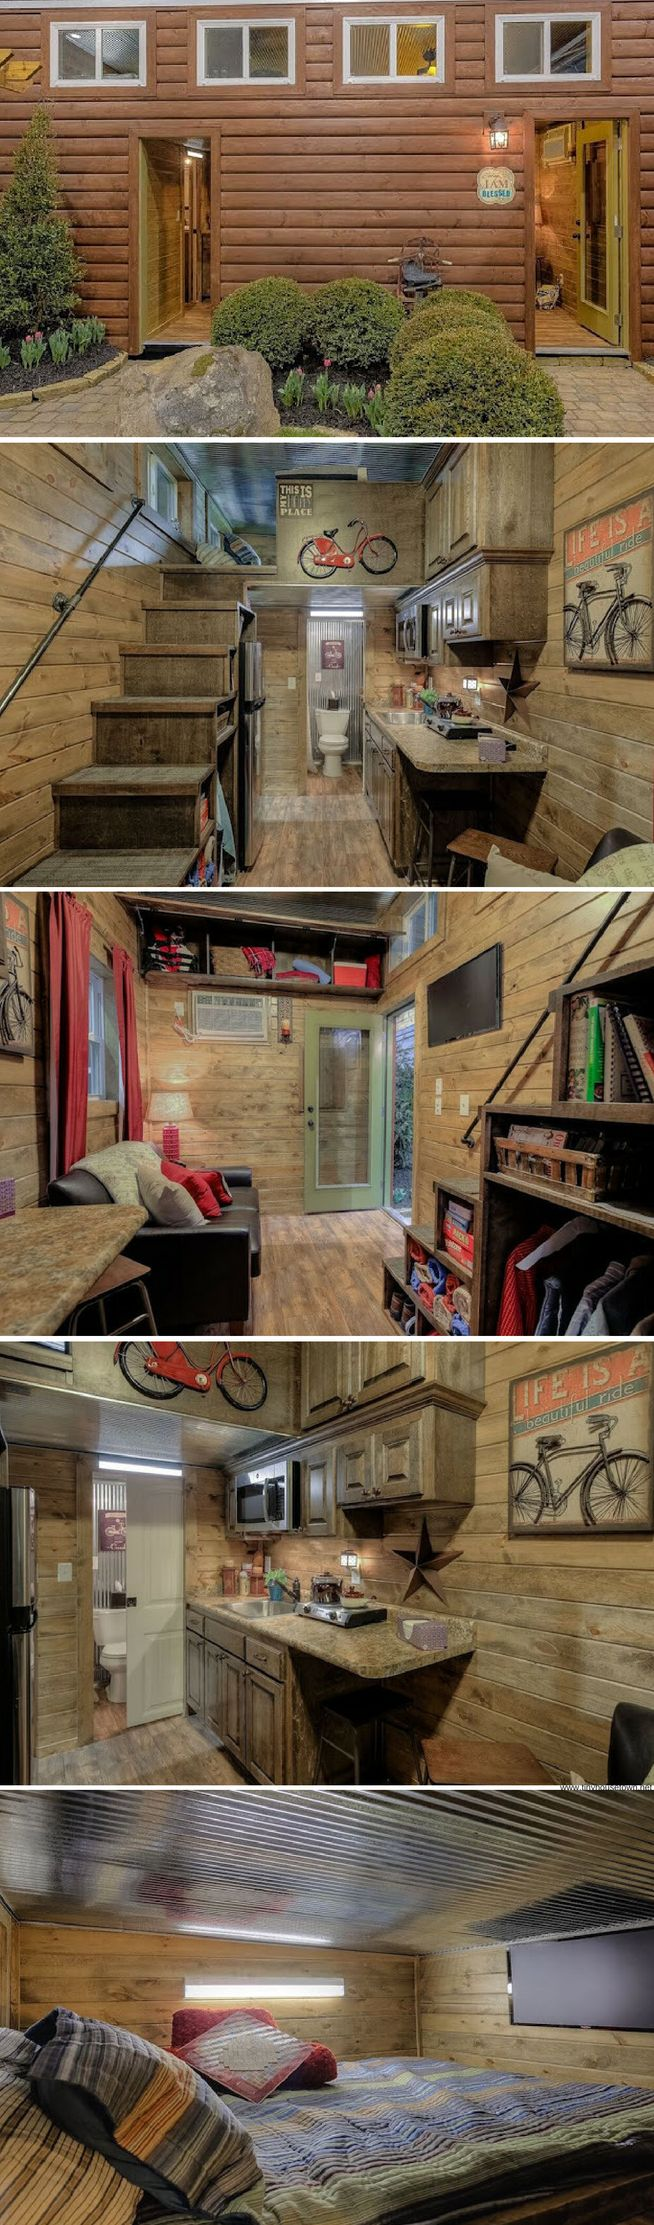 A 215 sq ft shipping container home, styled to look like a cabin